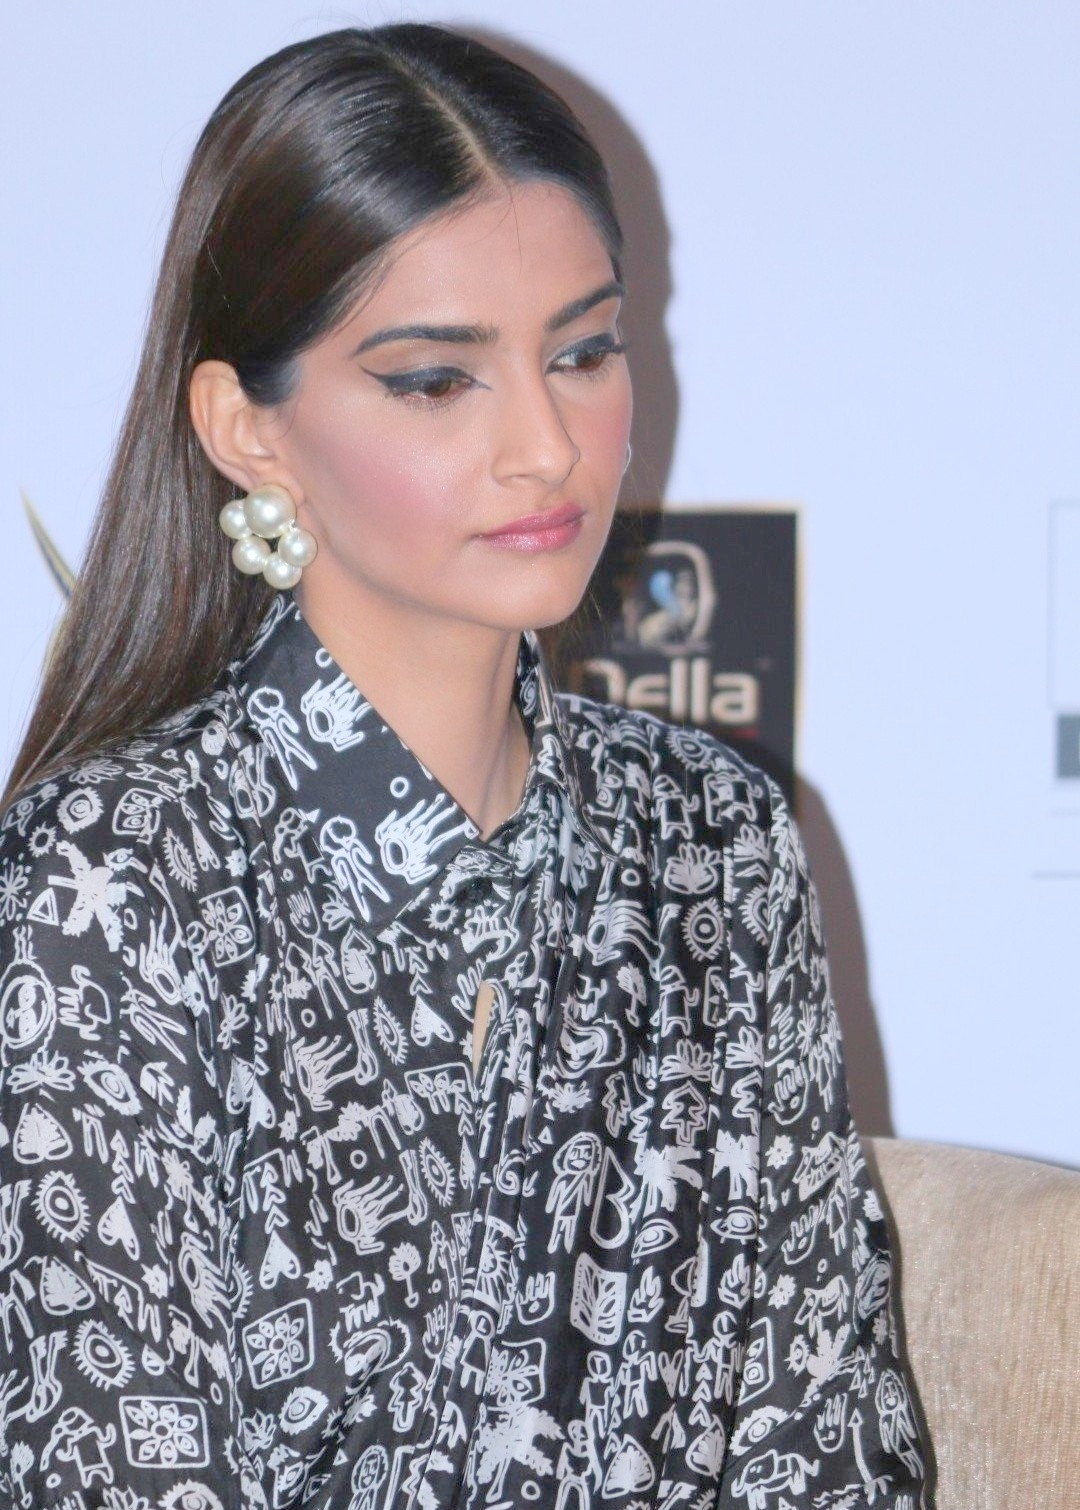 High Quality Bollywood Celebrity Pictures Sonam Kapoor -6062